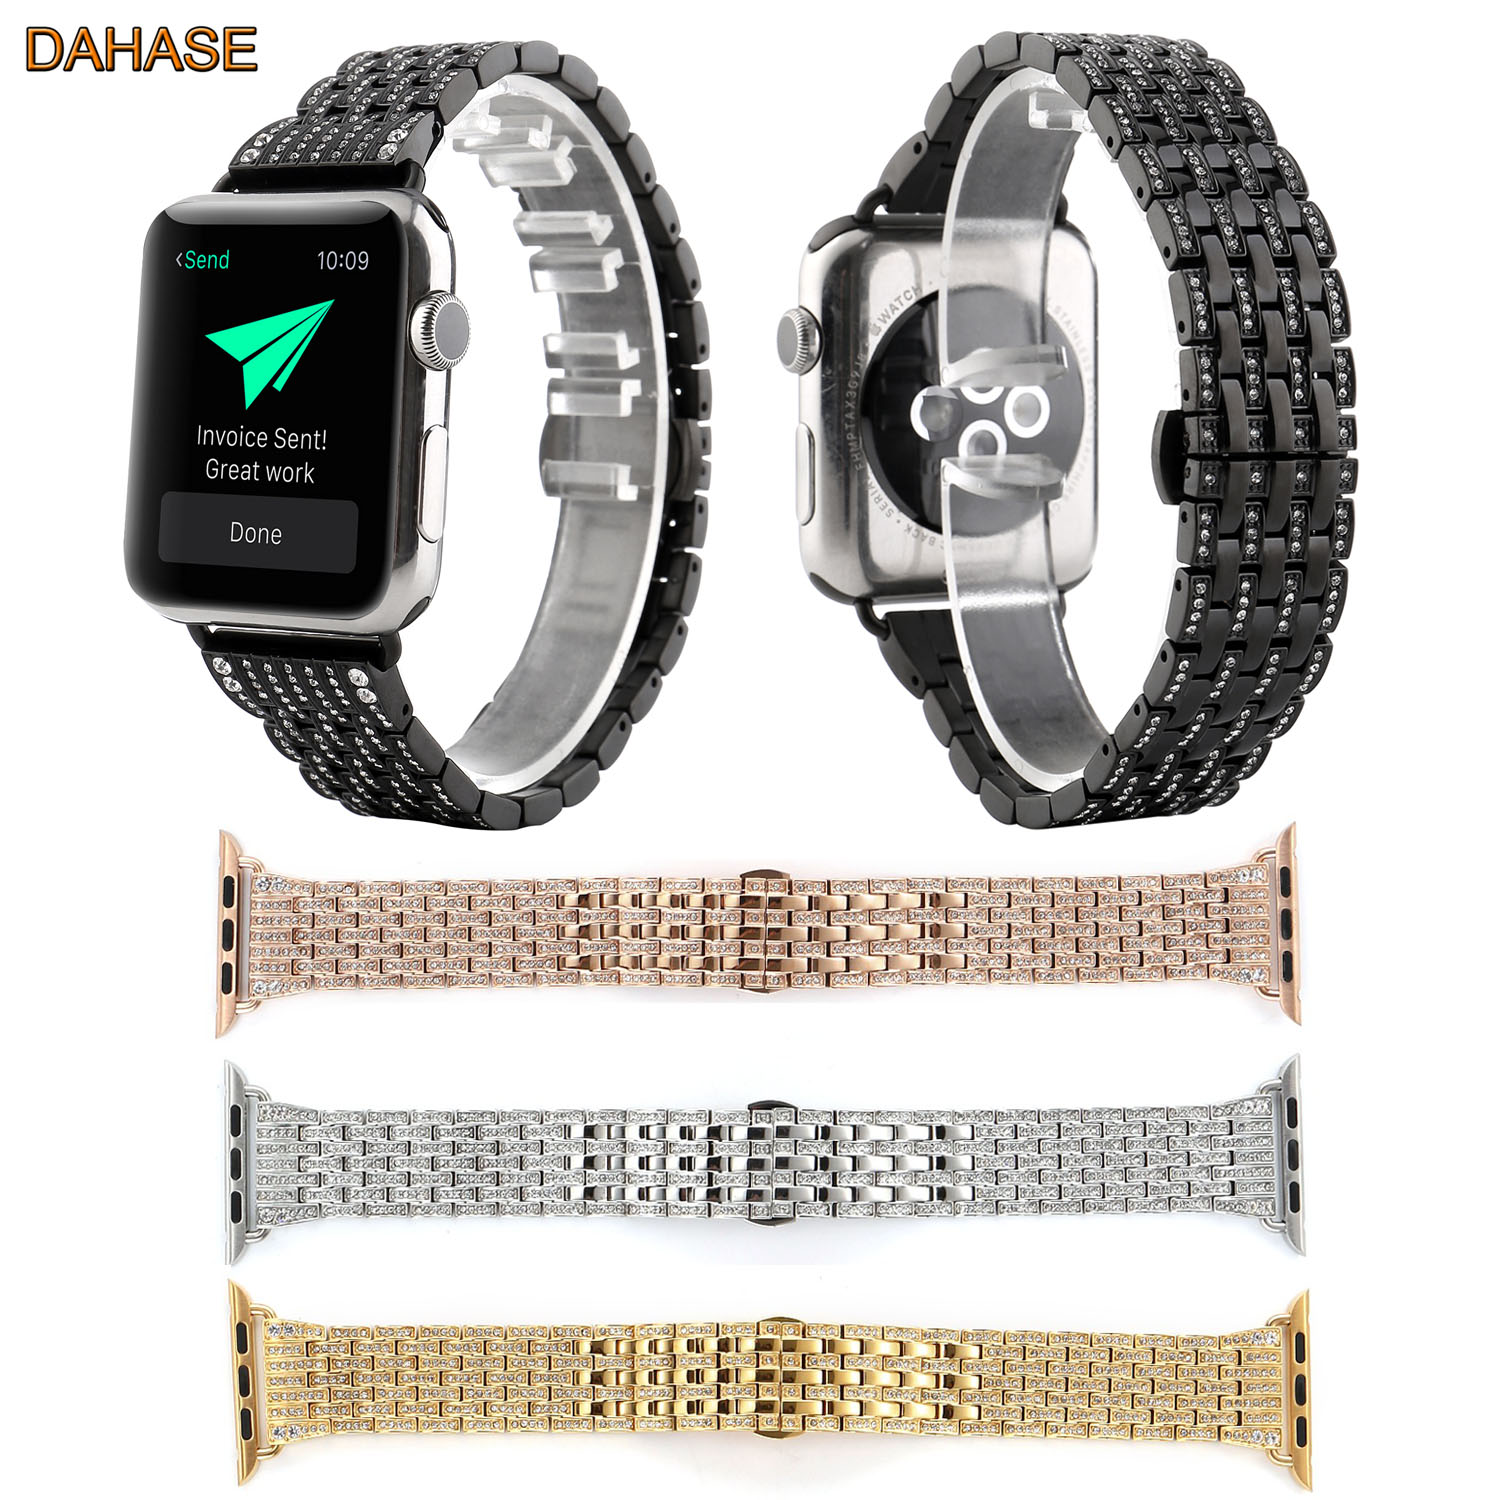 DAHASE Bling Crystal Stainless Steel Watchband for iWatch Strap Diamond Rhinestone Band for Apple Watch Series 1/2/3 Wristband dahase bling rhinestone link bracelet for apple watch band stainless steel strap for iwatch 38mm 42mm series 1 2 3 belt